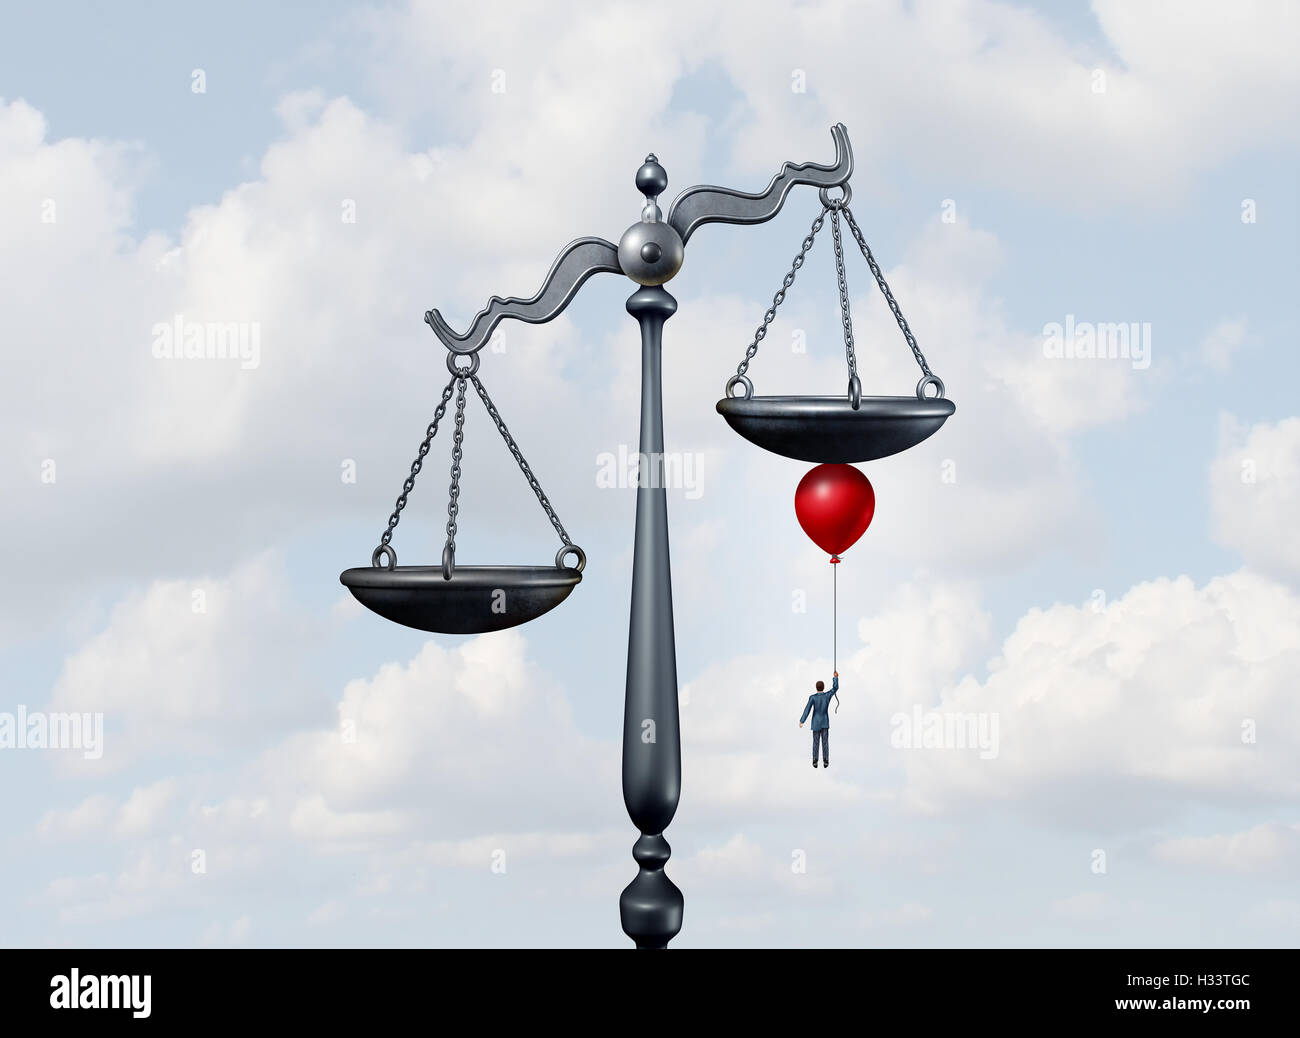 Tipping the scales of justice concept as a justice court scale being moved and influenced by a businessman or lawyer - Stock Image